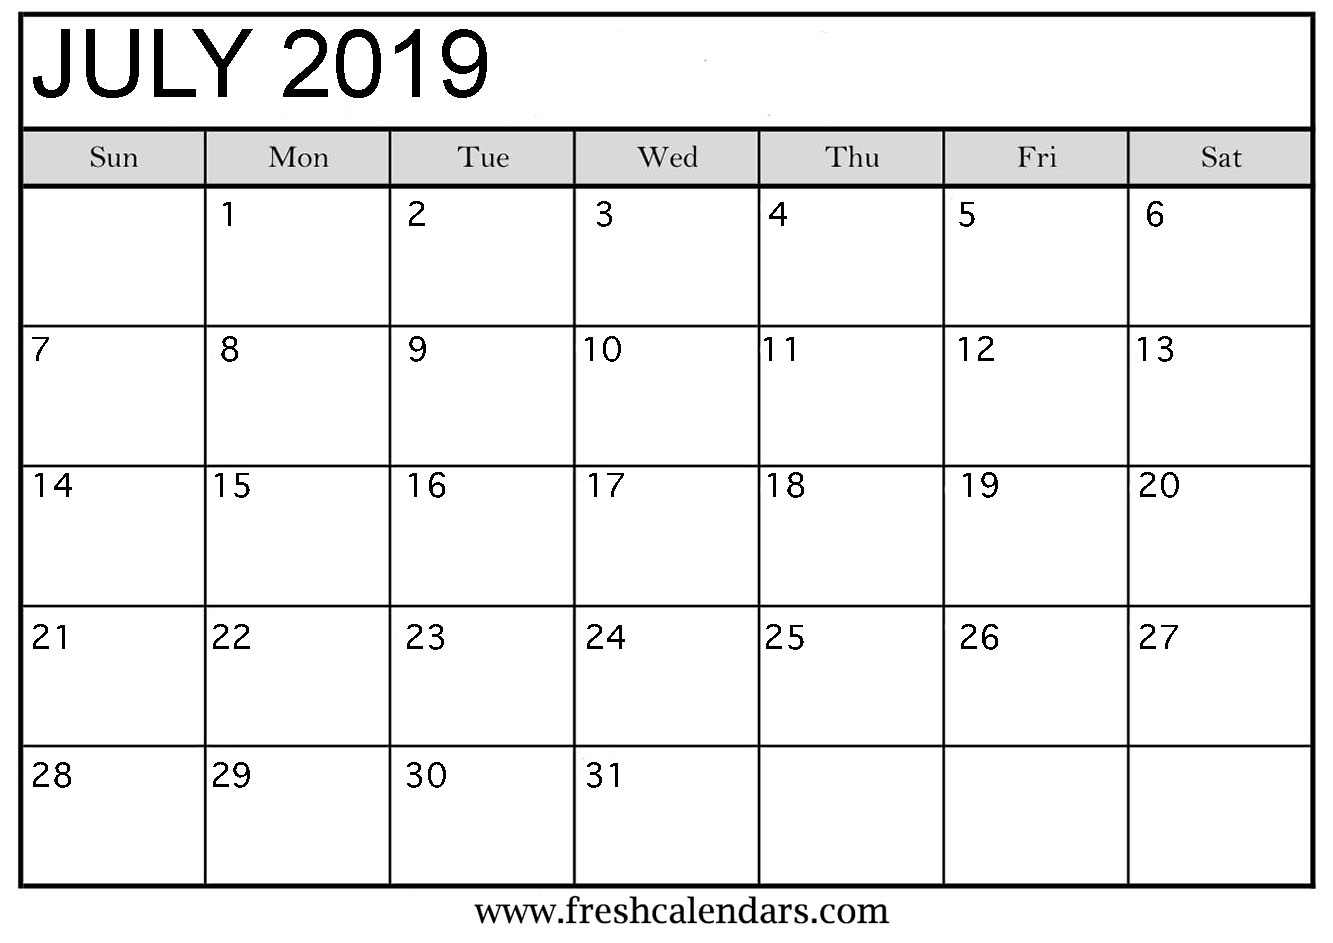 July 2019 Calendar Templates Online PDF Word Excel